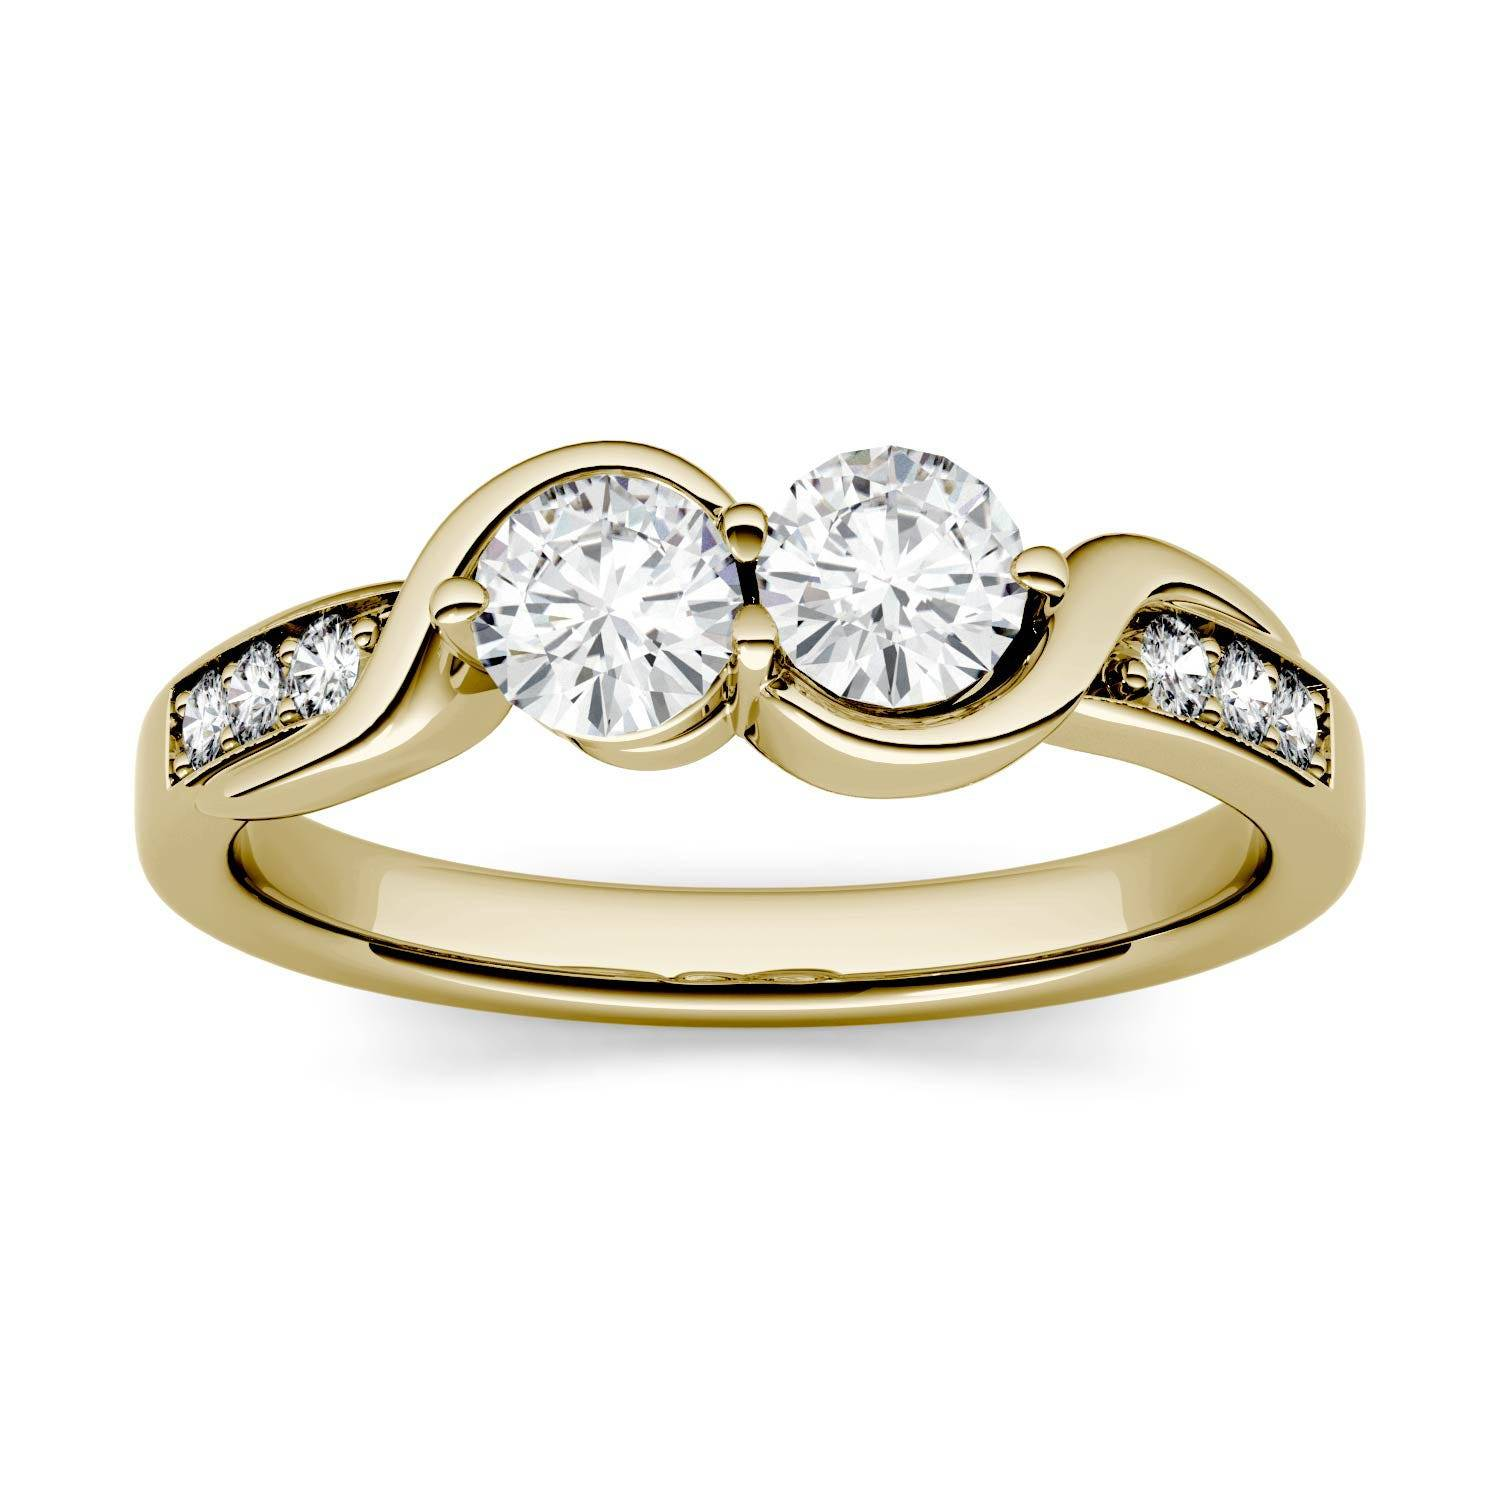 Charles & Colvard Two Stone Swirl with Side Accents Wedding Ring in 14K Yellow Gold, Size: 7, 1.12CTW Round Forever One - Colorless Moissanite Charles & Colvard  - Yellow Gold - Size: 7